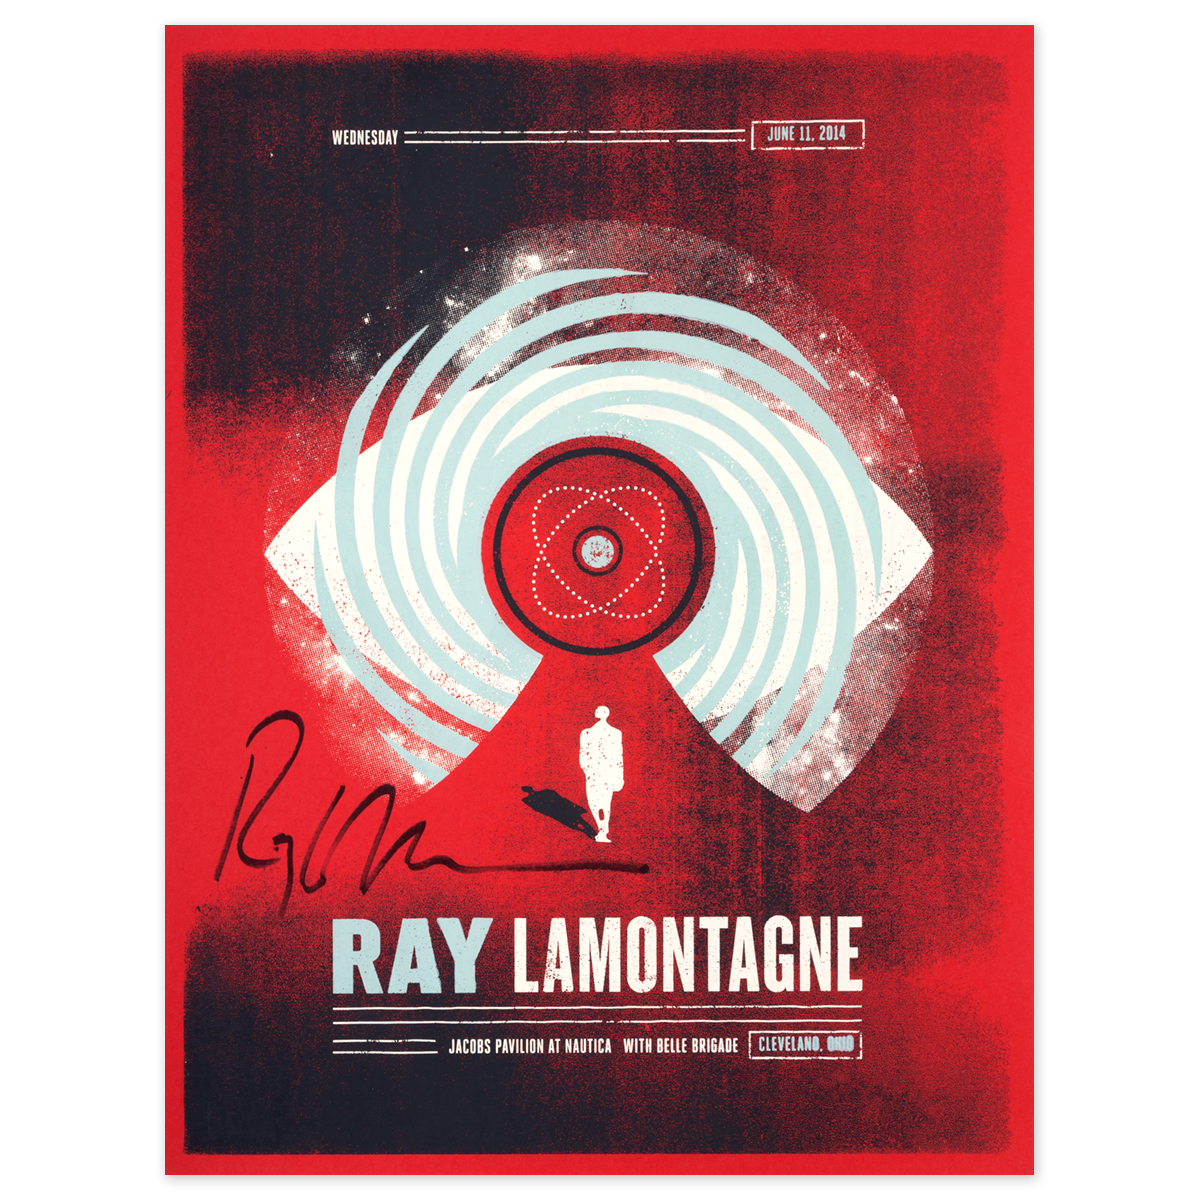 Ray LaMontagne 2014 Cleveland, OH Event Poster Signed